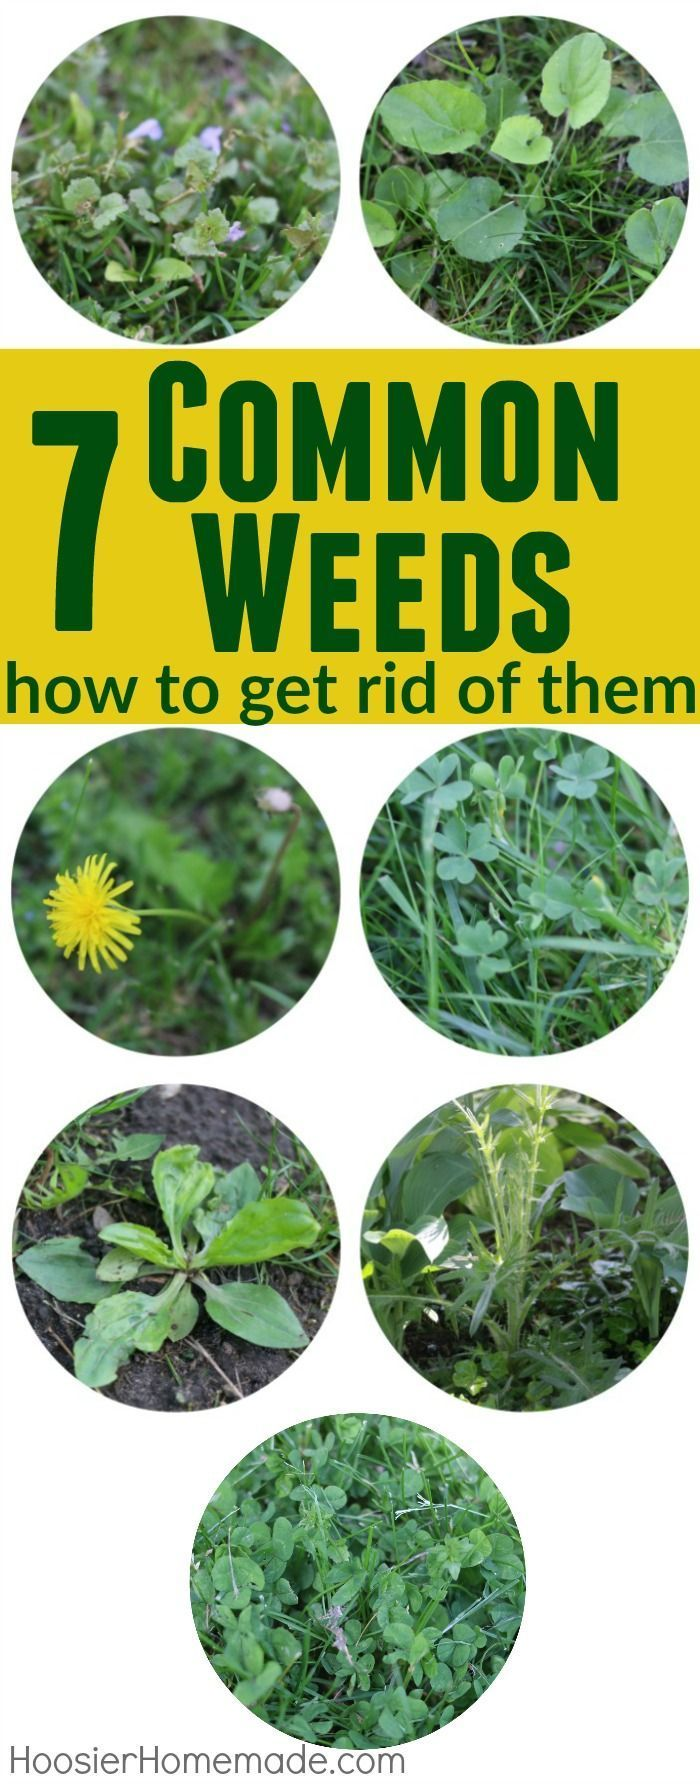 Don't let weeds ruin your lawn and landscaping! Learn how to indentify these 7 Common Weeds with Identification Pictures, and get RID of them for good!